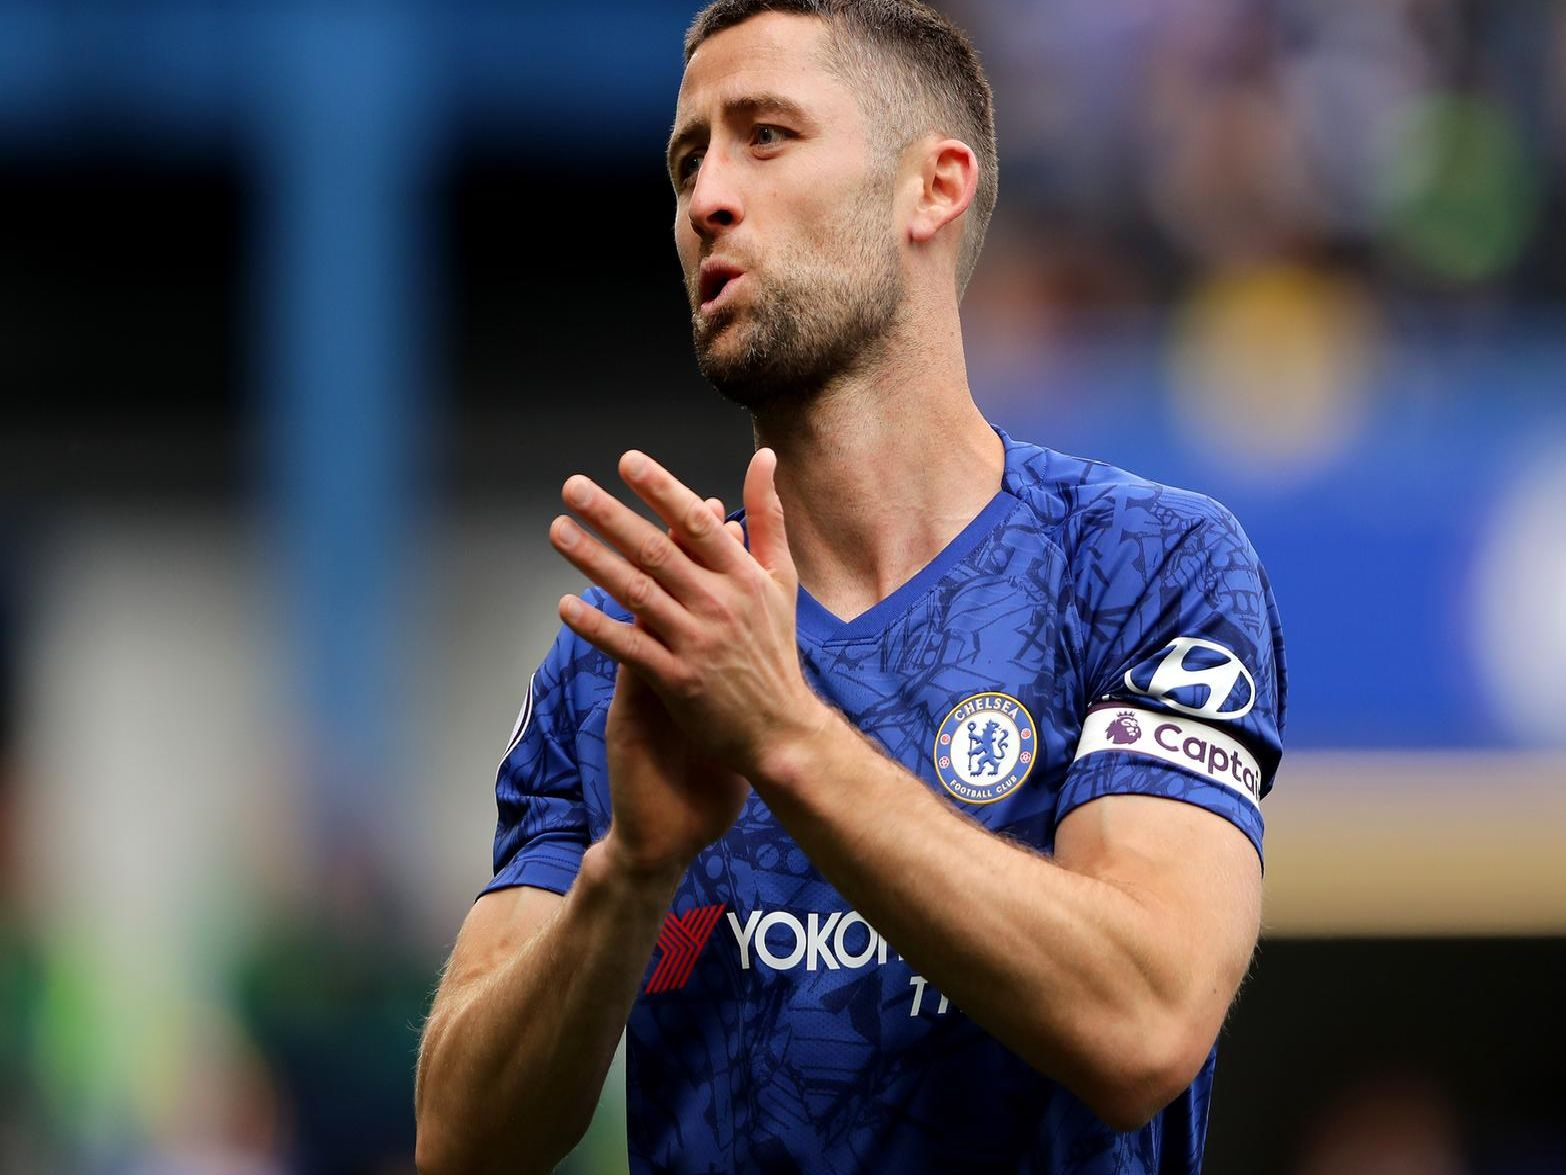 Champions League winner Gary Cahill has been linked with a move to Burnley.